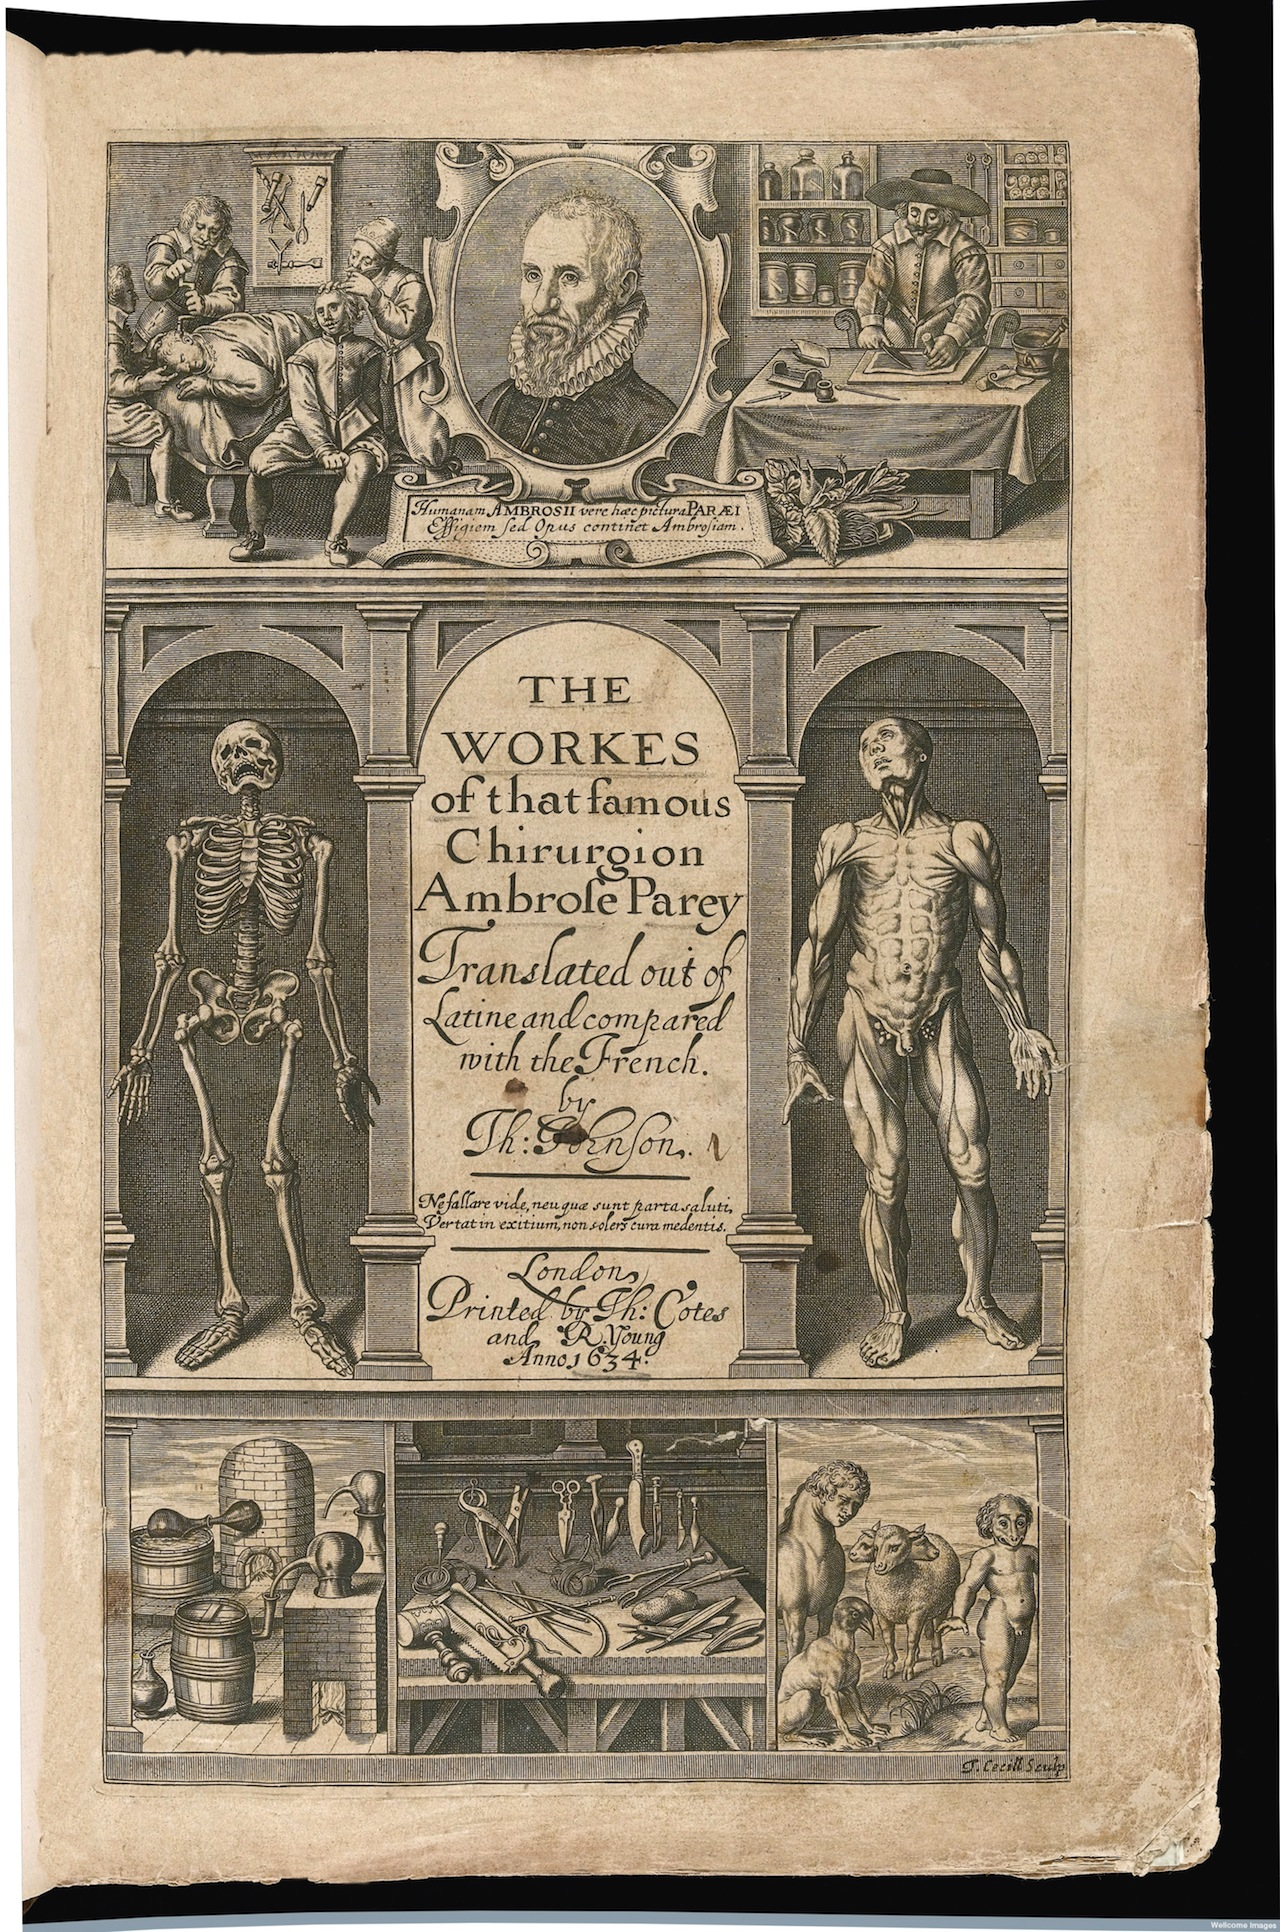 L0041056 The Workes, Frontispiece Credit: Wellcome Library, London. Wellcome Images images@wellcome.ac.uk http://wellcomeimages.org The Workes, Frontispiece 1634 By: Ambroise ParÈThe workes of ... Ambrose Parey Ambroise ParÈ Published: 1634 Copyrighted work available under Creative Commons Attribution only licence CC BY 4.0 http://creativecommons.org/licenses/by/4.0/